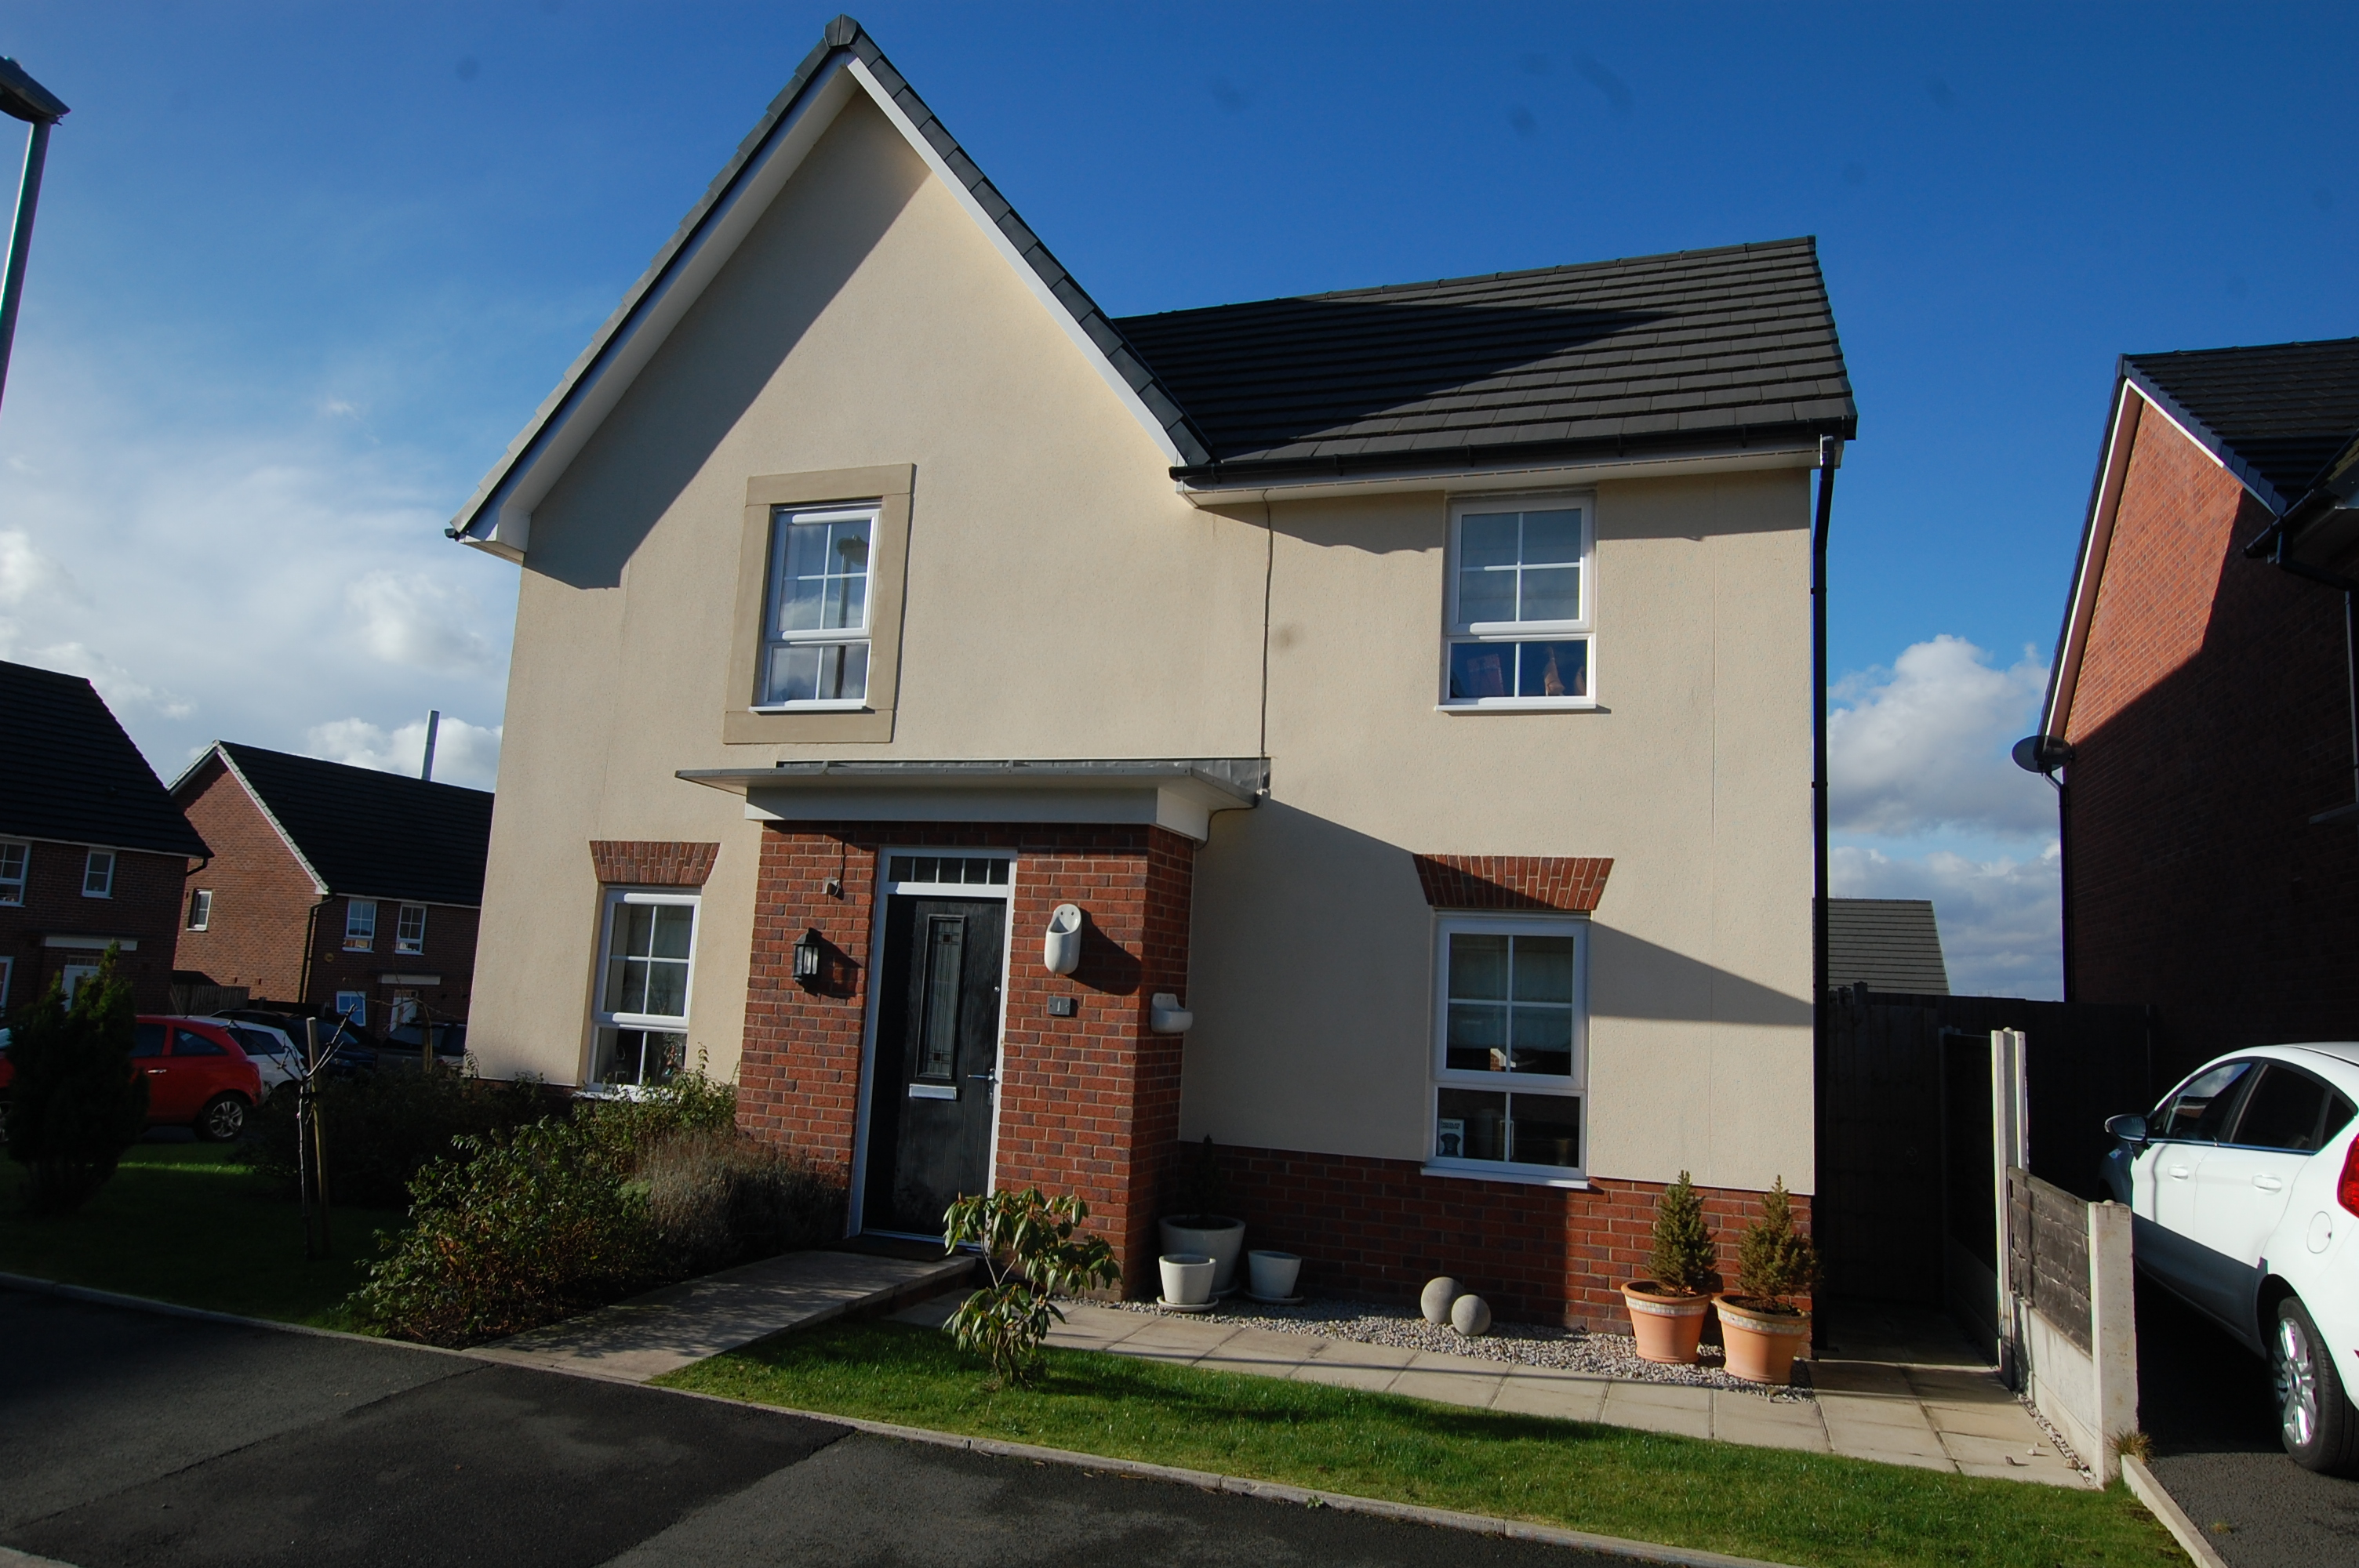 Property To Rent In Rayleigh Private